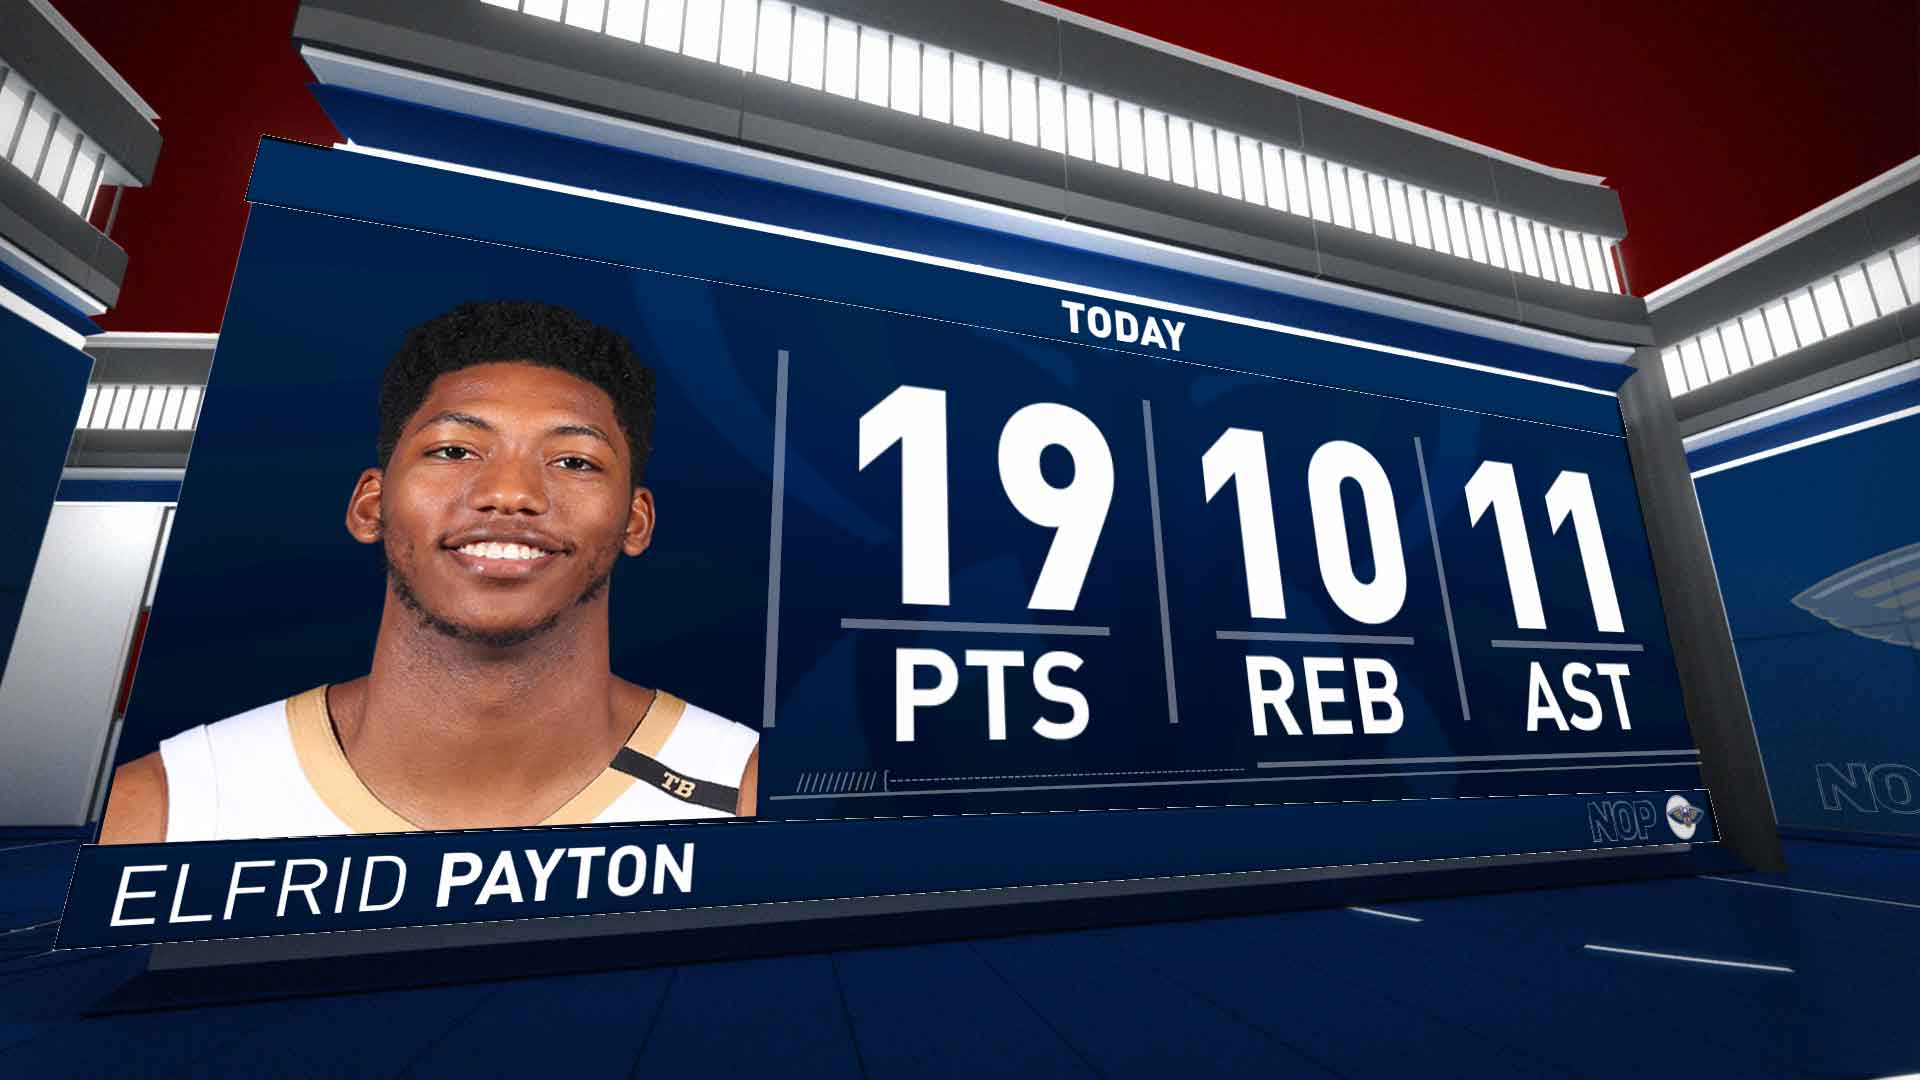 Elfrid Payton Posts 19 points, 11 assists & 10 rebounds vs. Dallas Mavericks